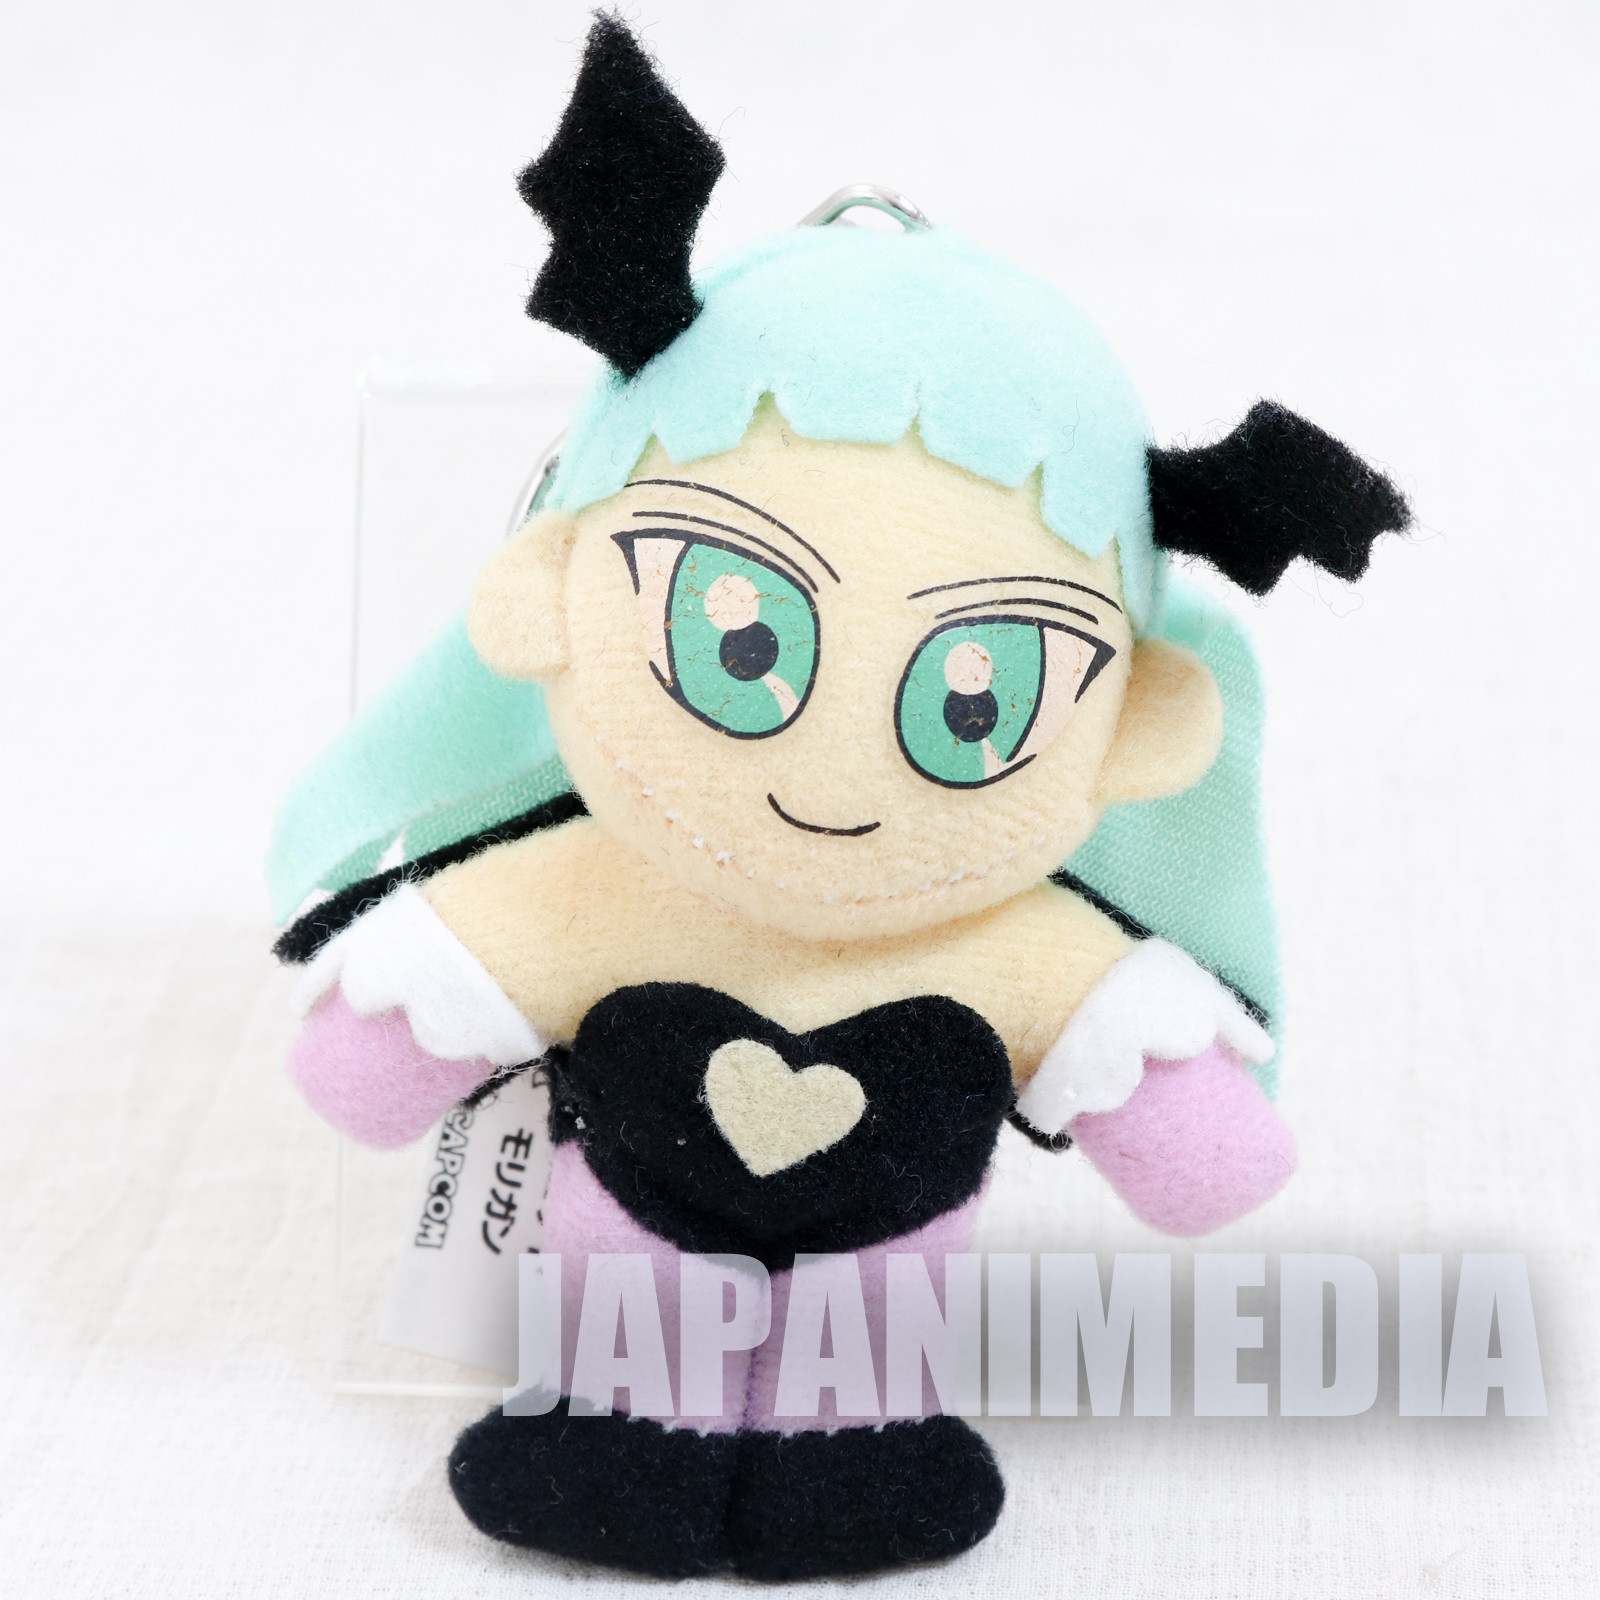 Darkstalkers (Vampire) Morrigan Small Plush Doll Keychain JAPAN HUNTER SAVIOR